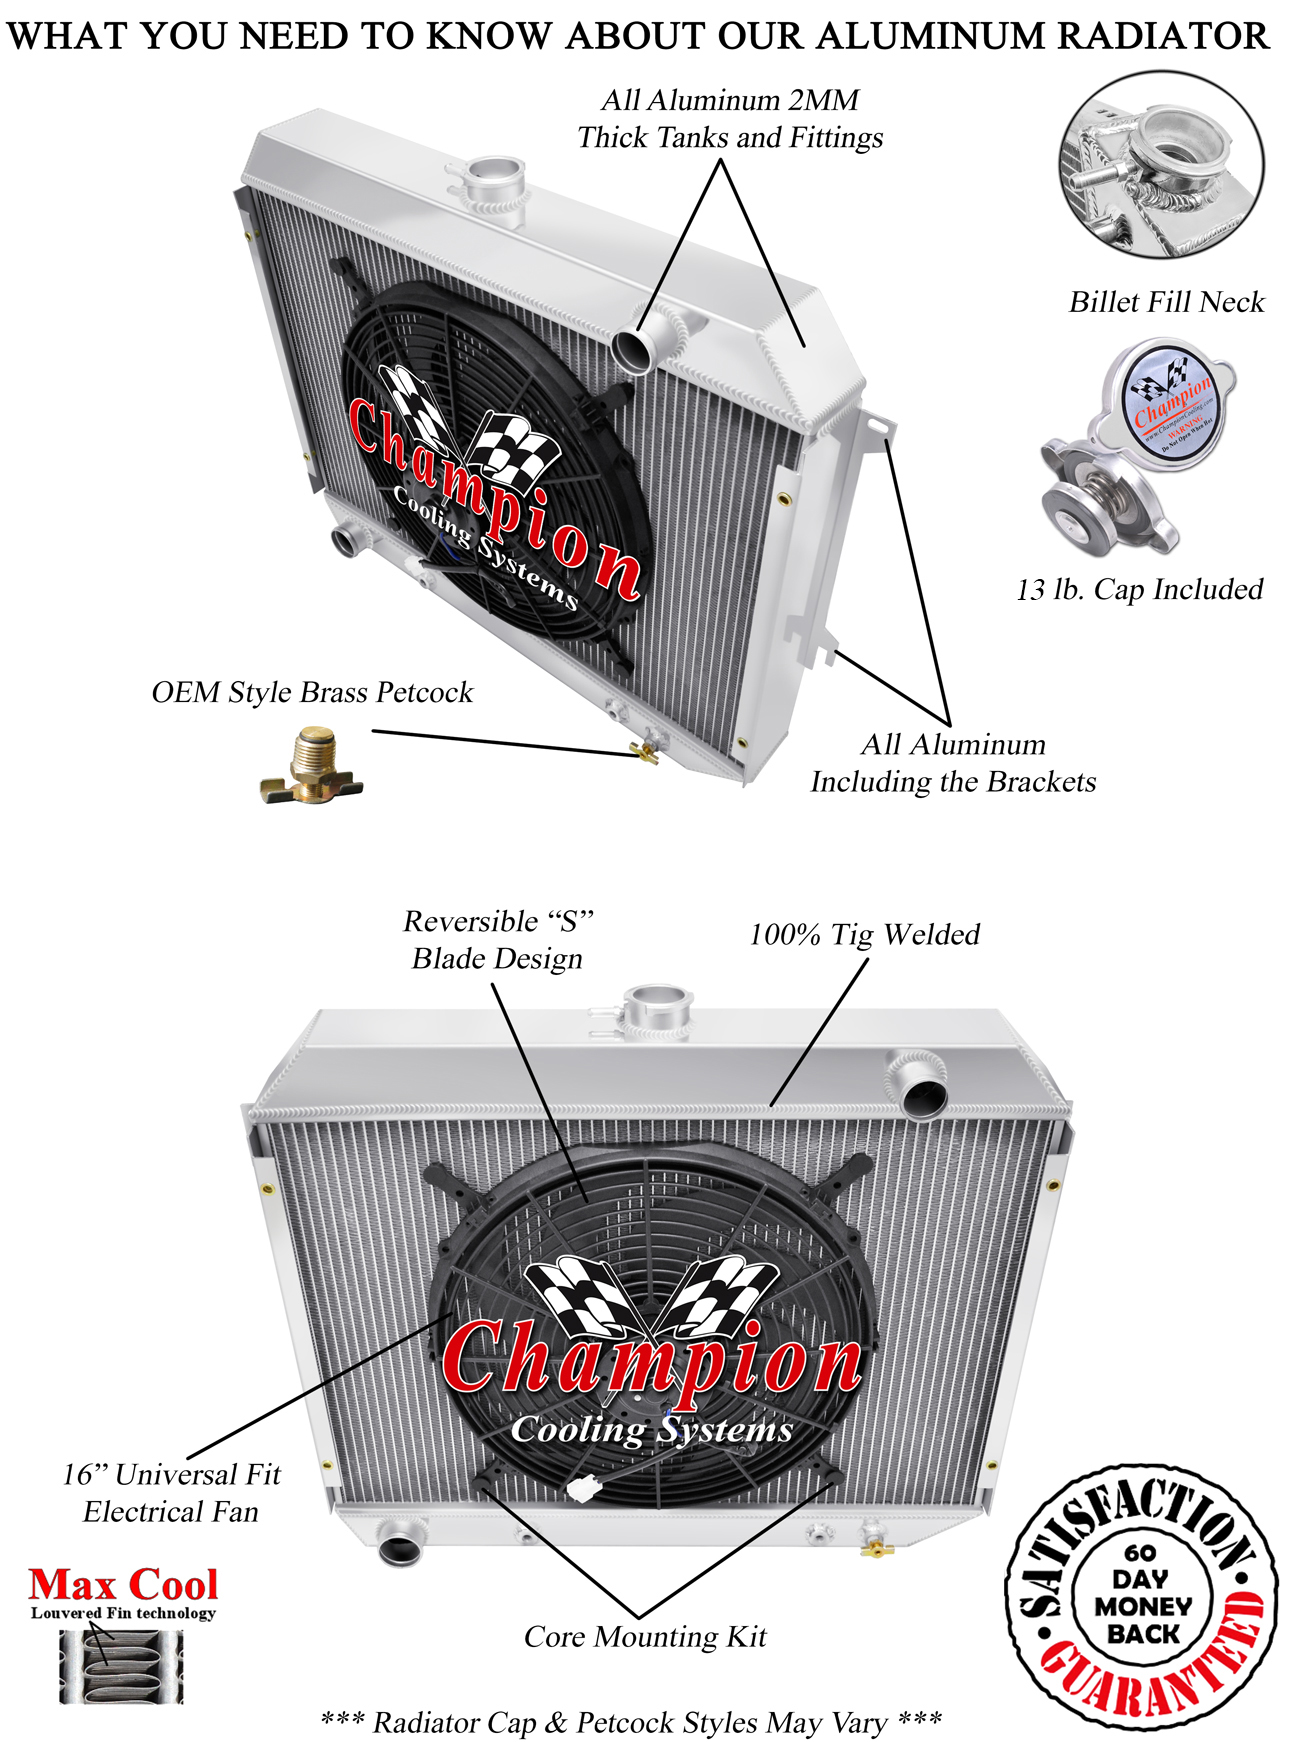 https://www.championcooling.com/photos/Photos%20White/With%20Fans/Combos/375/375_16in_fan/375_fan_white_Diagram_Champion.jpg